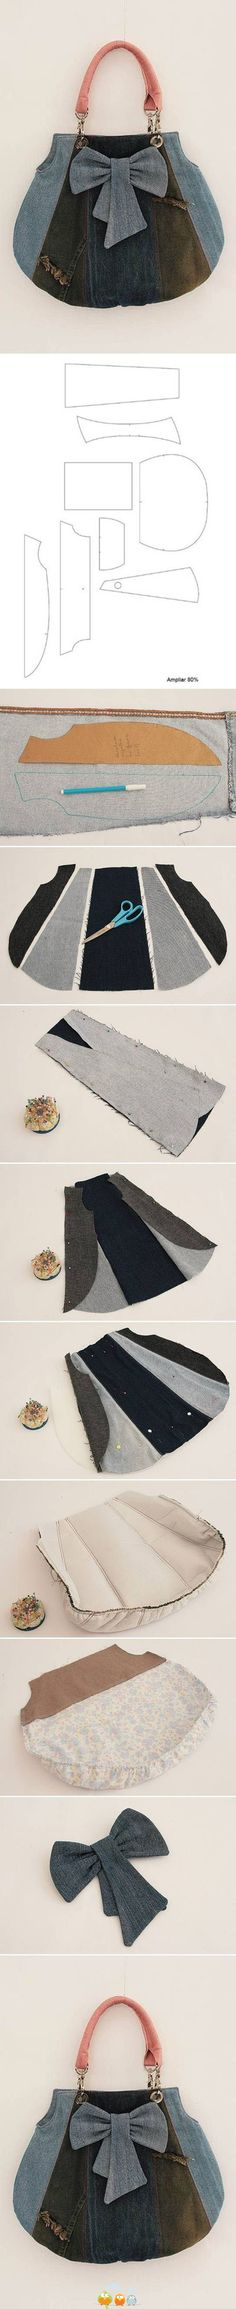 Patchwork Clothes Old Jeans Diy 26 Ideas Diy Old Jeans, Recycle Jeans, Diy Fashion, Fashion Bags, Jeans Fashion, Trendy Fashion, Denim Ideas, Denim Crafts, Diy Purse